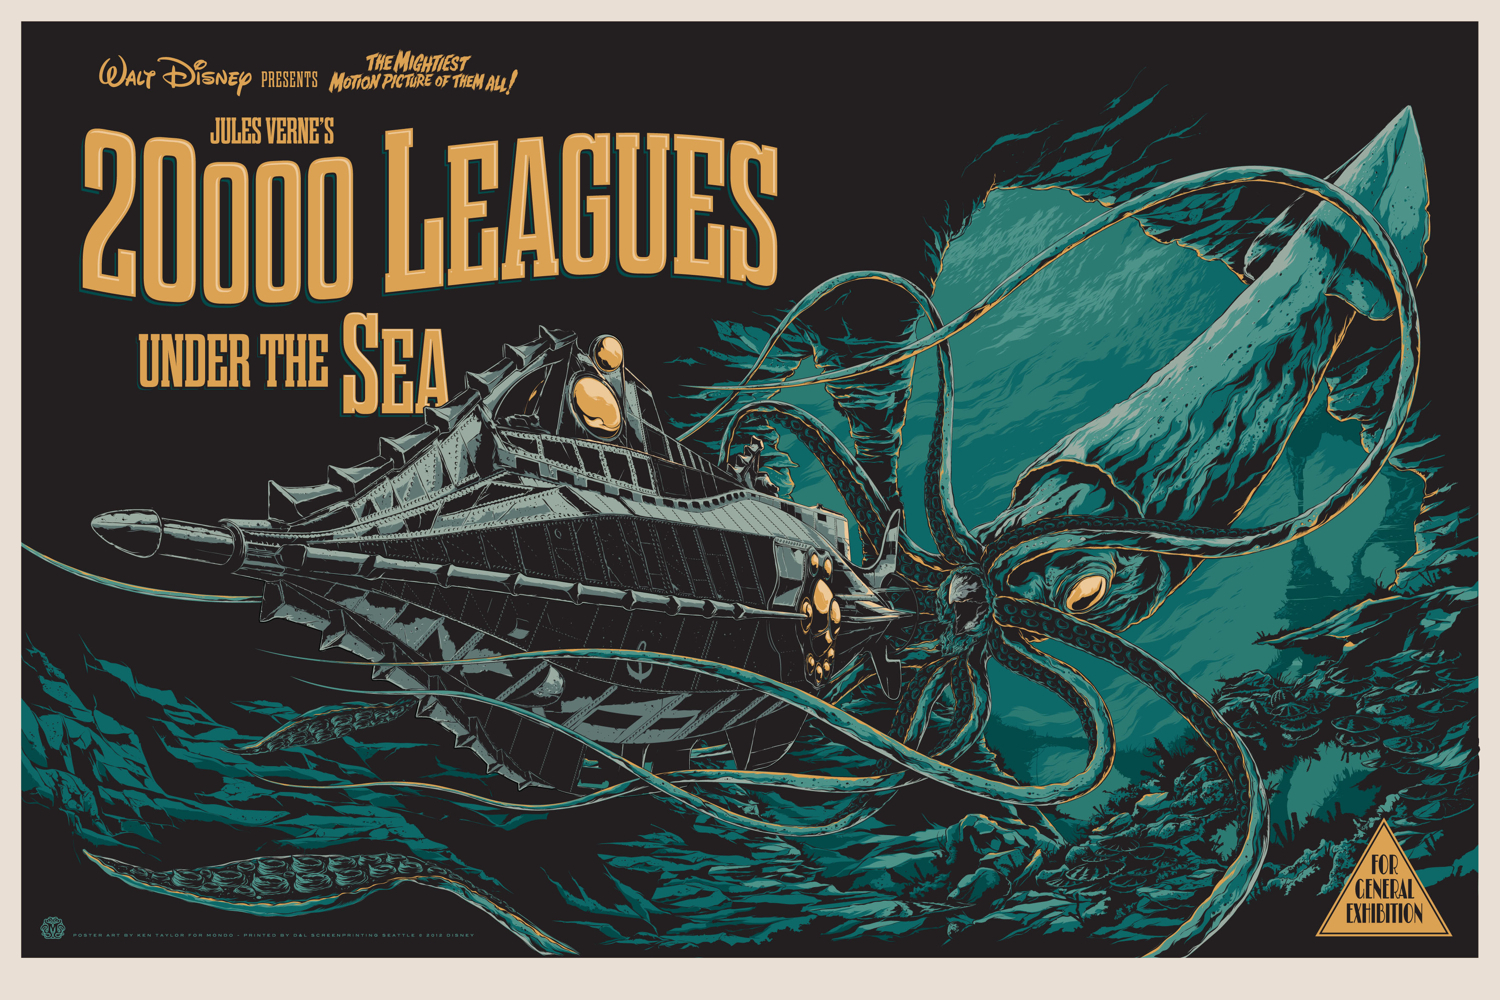 Behind The Scenes Of 20 000 Leagues Under The Sea